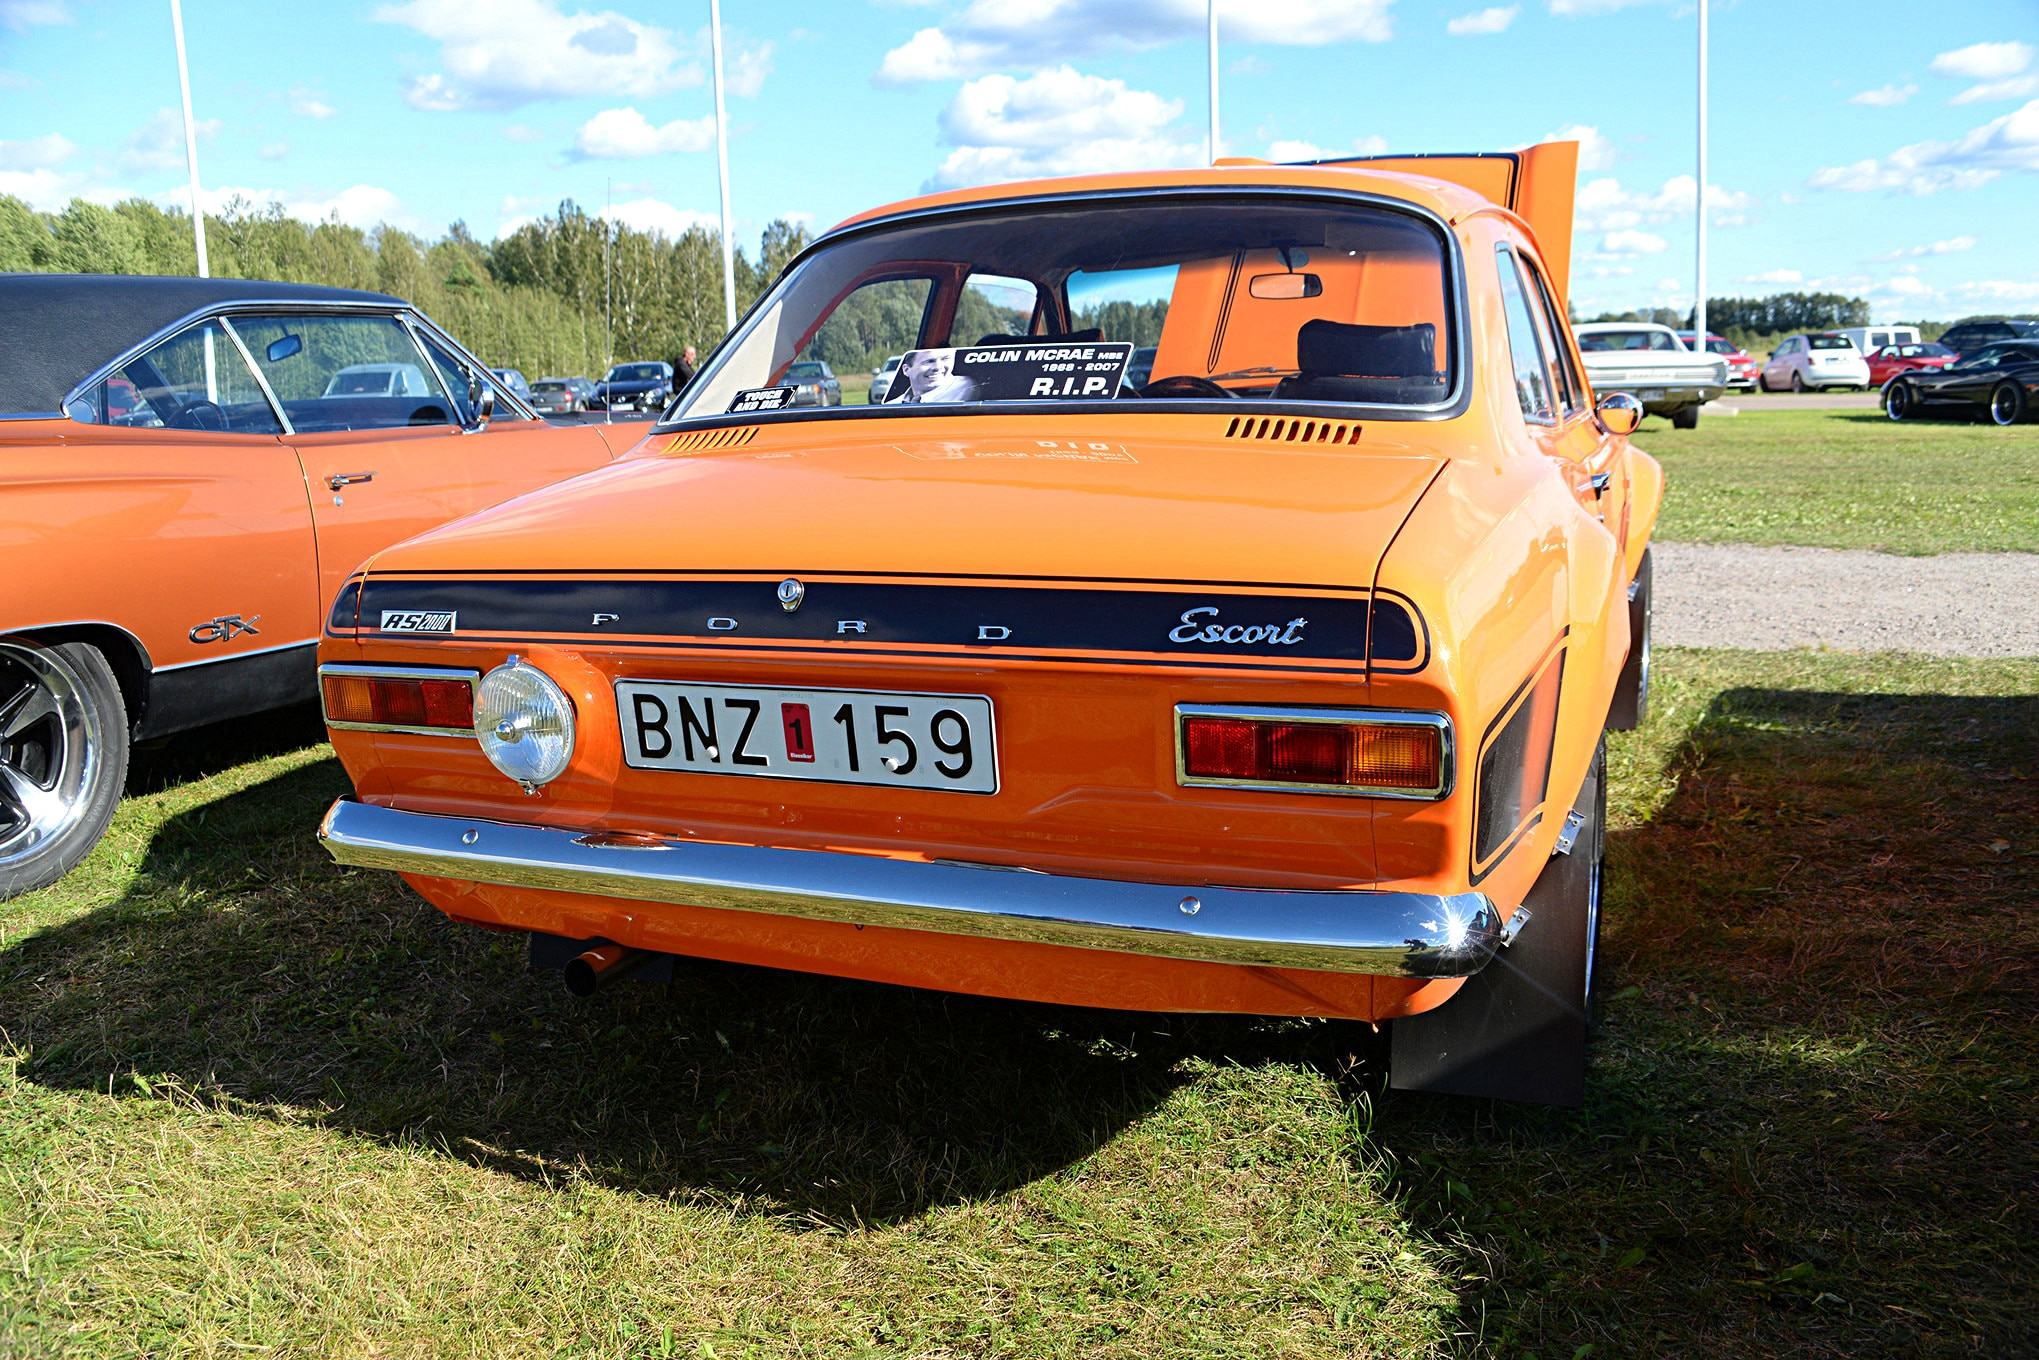 Ford Racing At Tierp In Sweden 32